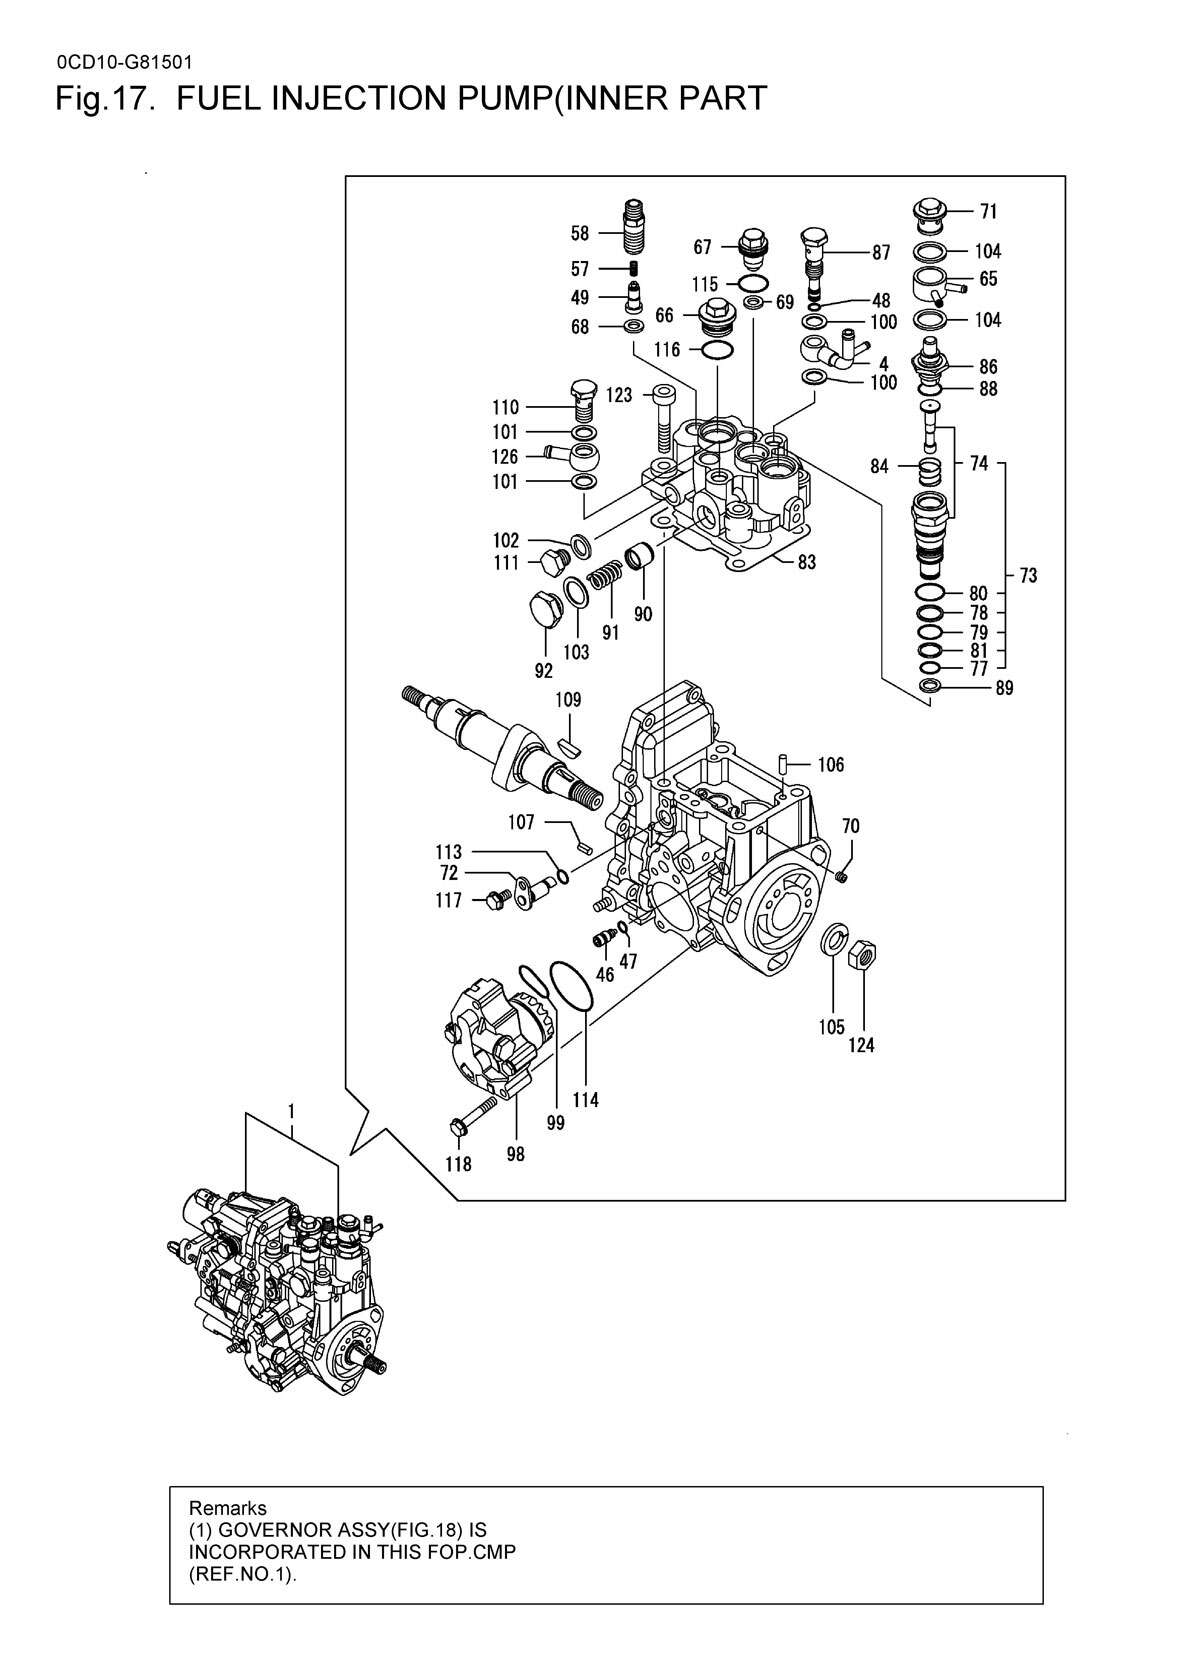 fuel injection pump (inner parts)